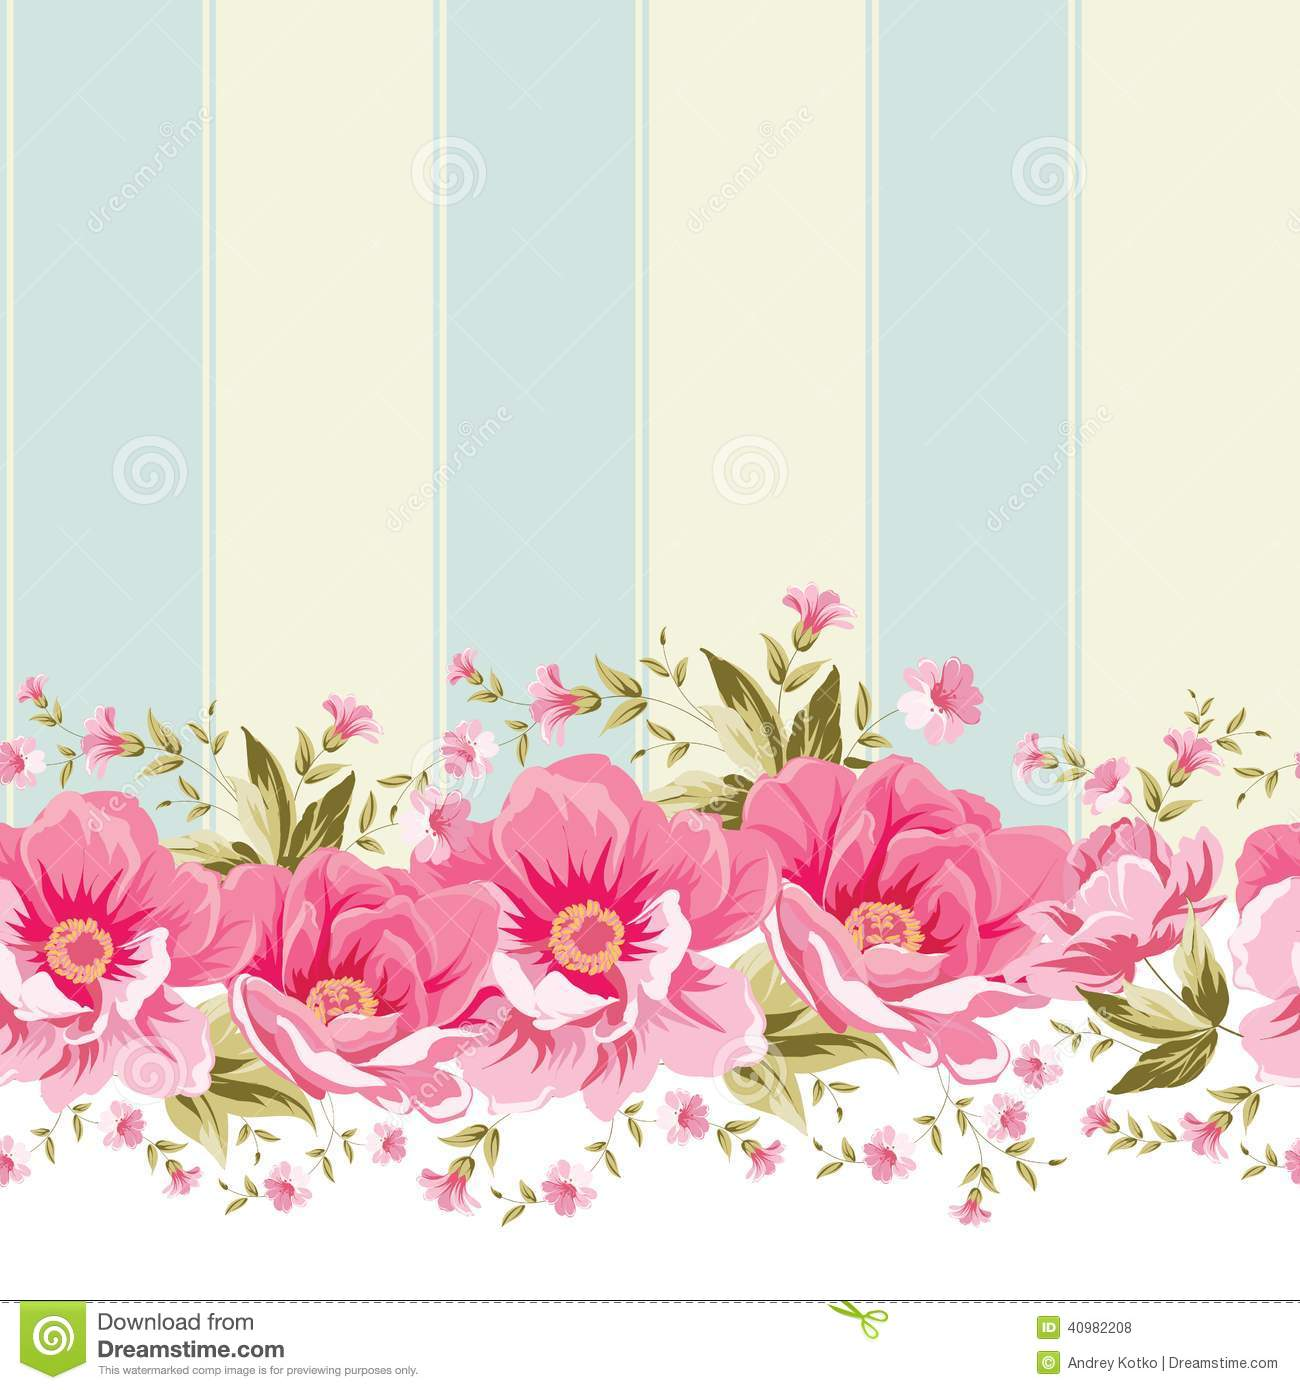 Free Download Ornate Pink Flower Border With Tile Elegant Vintage